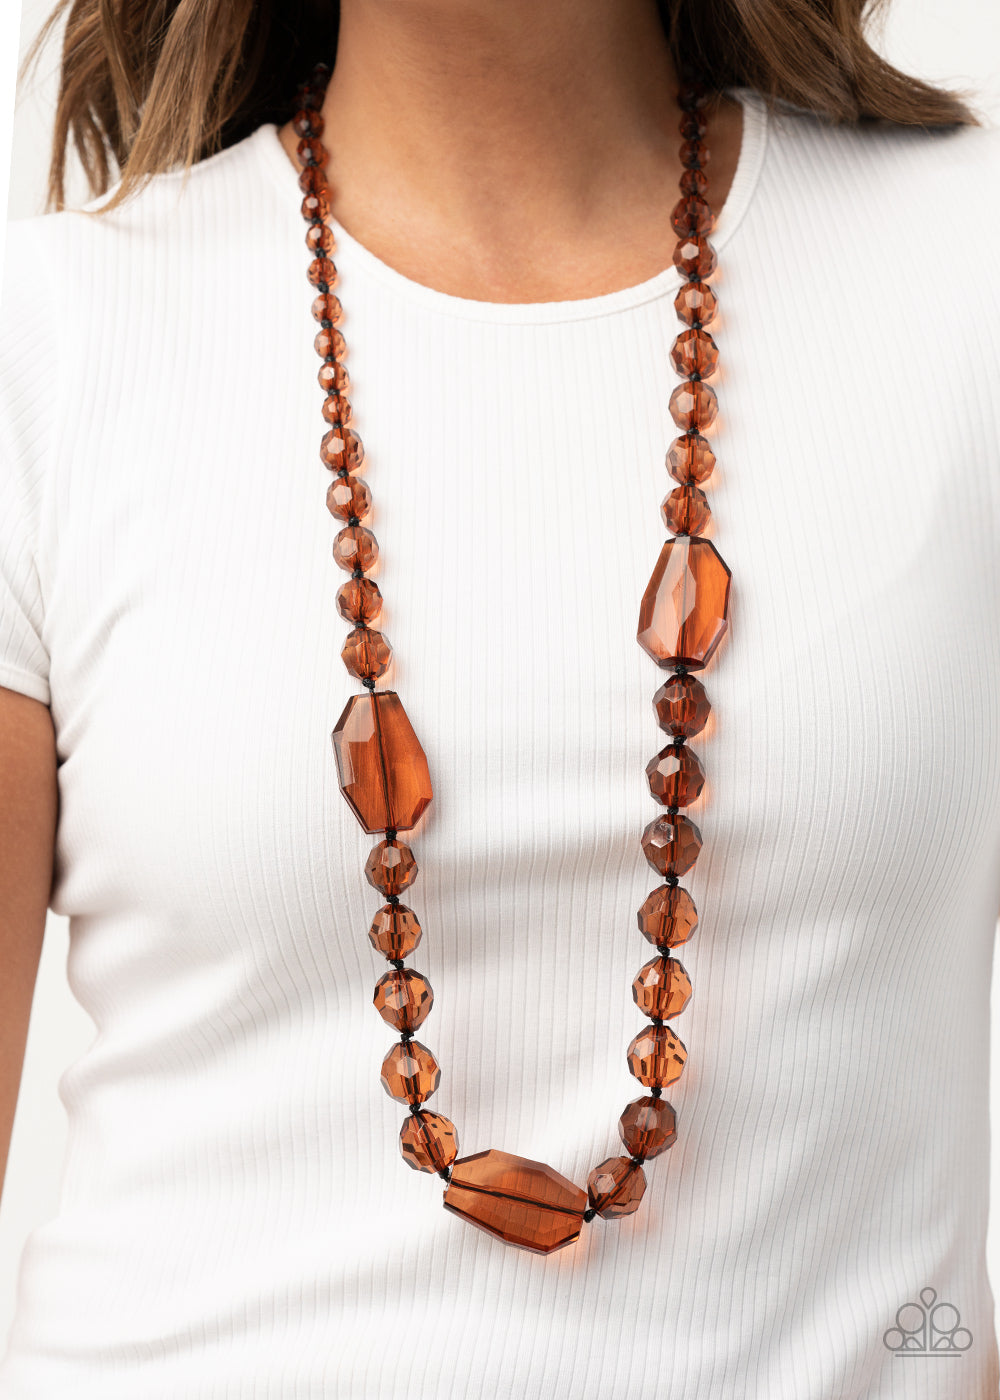 Malibu Masterpiece - Brown Necklace Paparazzi Accessories New